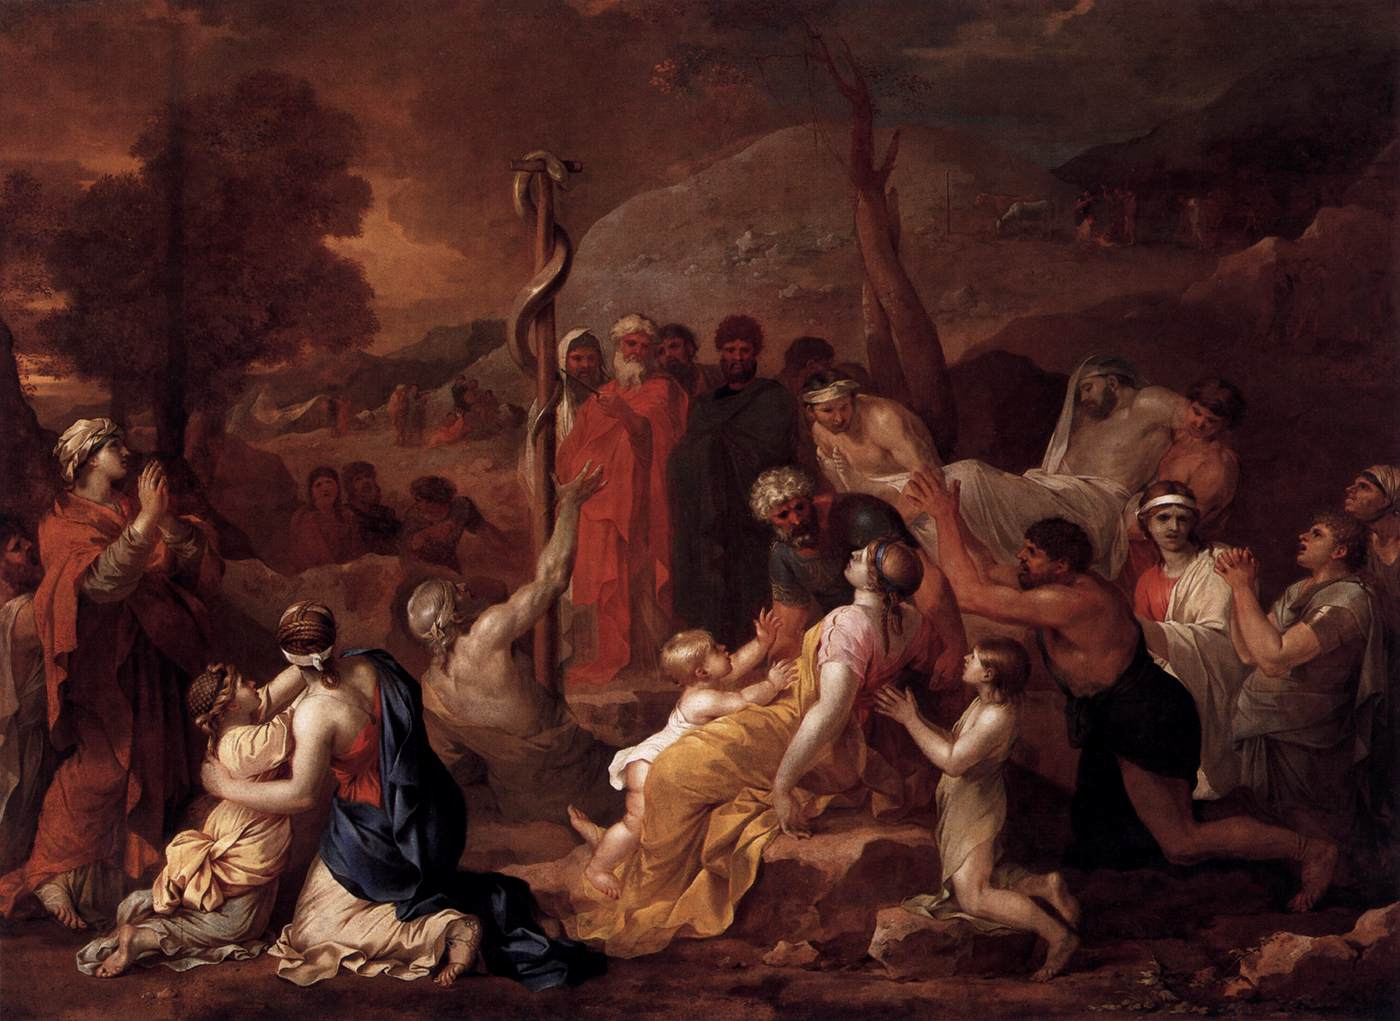 The leadership and righteousness of moses